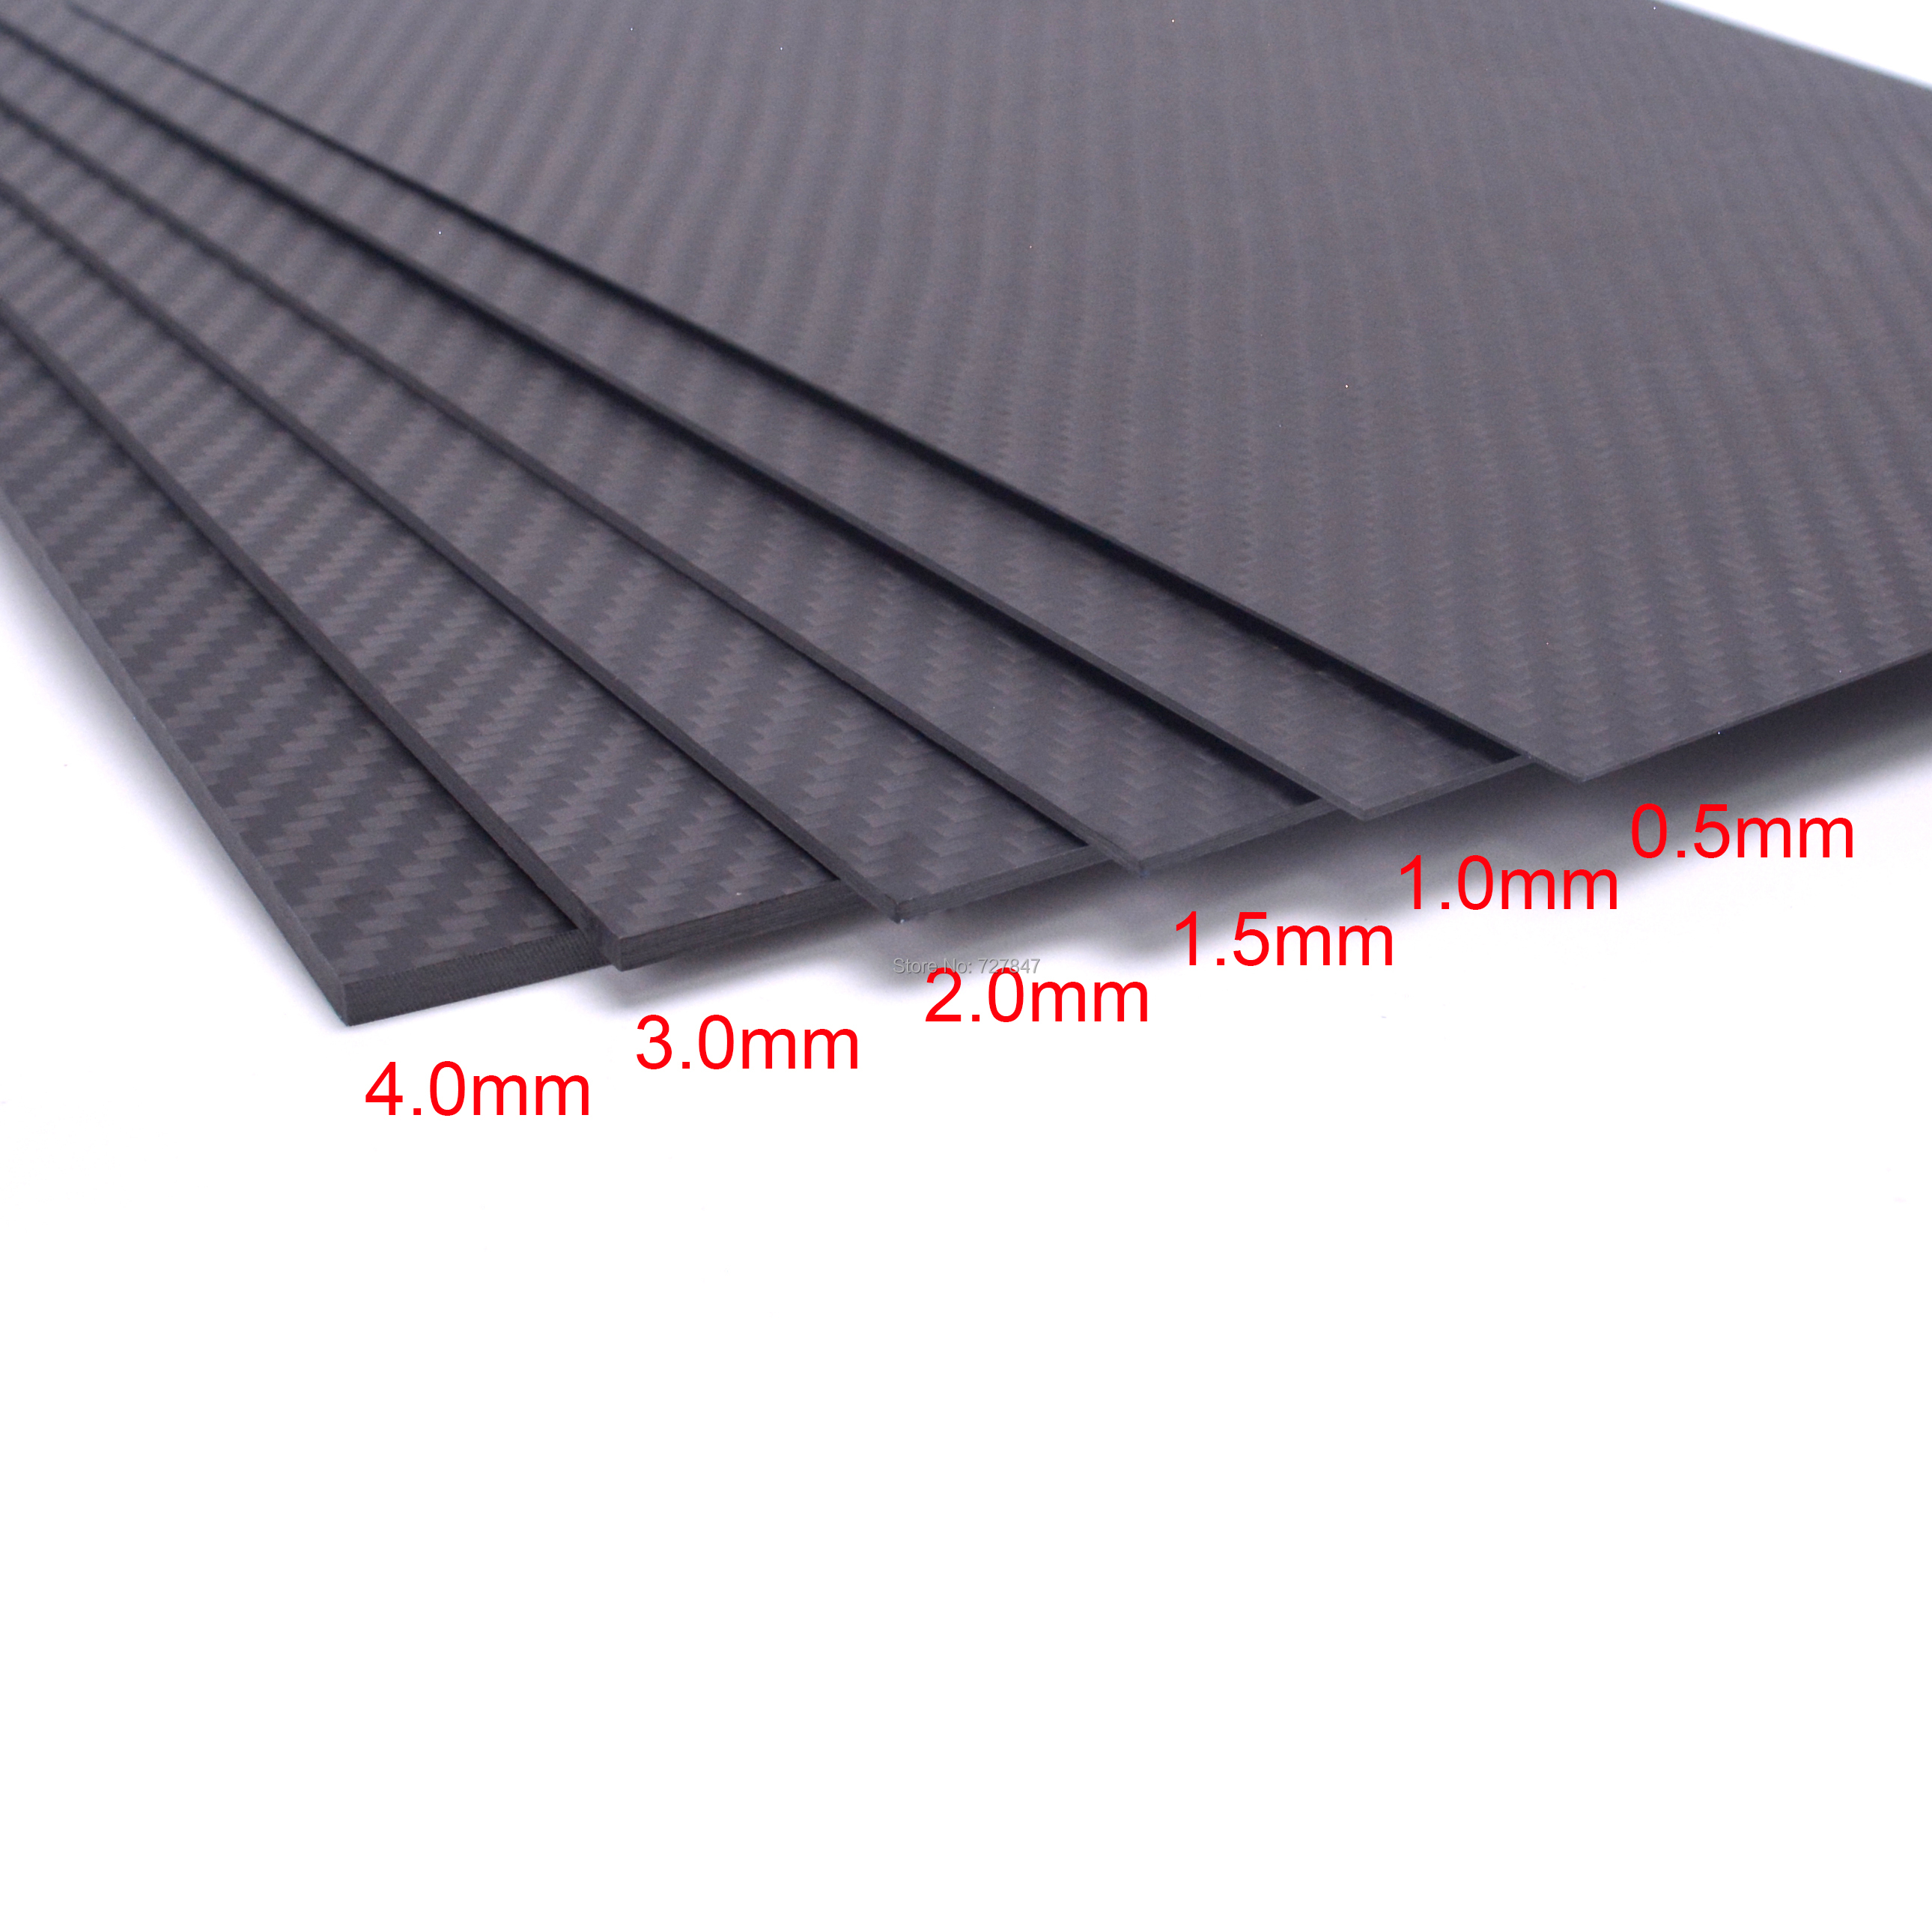 400mm X 200mm Real Carbon Fiber Plate Panel Sheets 0.5mm 1mm 1.5mm 2mm 3mm 4mm 5mm thickness Composite Hardness Material-in Parts & Accessories from Toys & Hobbies